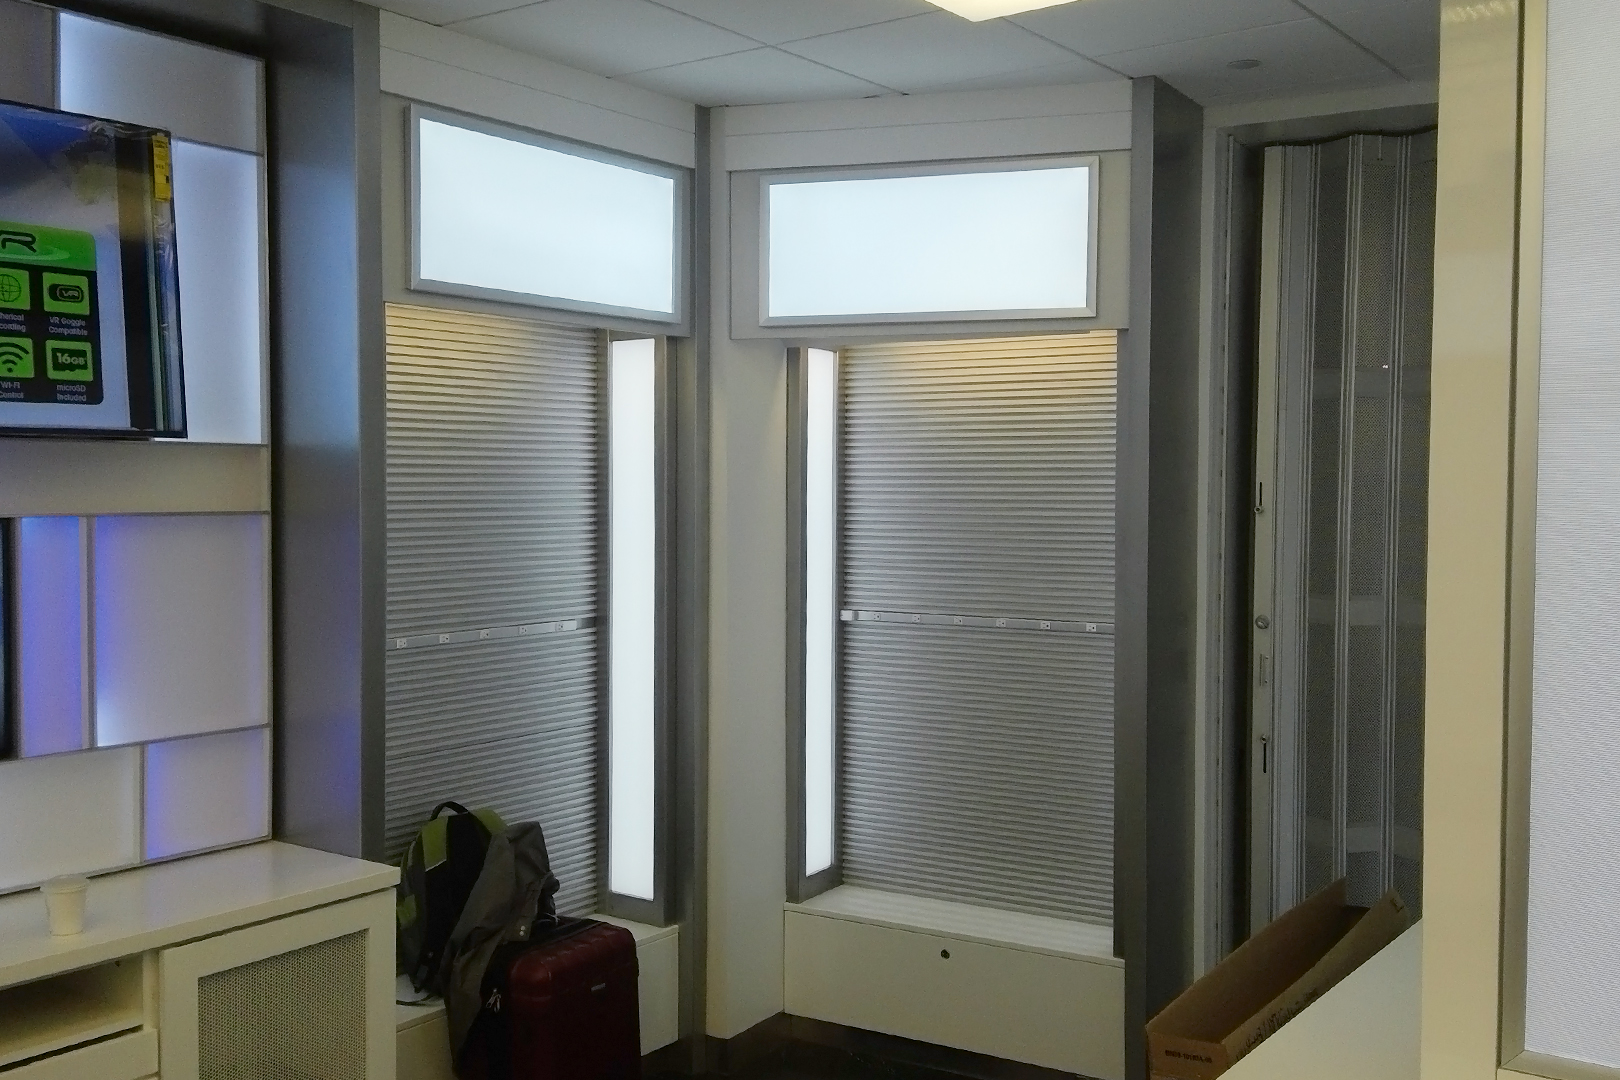 Tech on the go megawall unit with LED lighting.